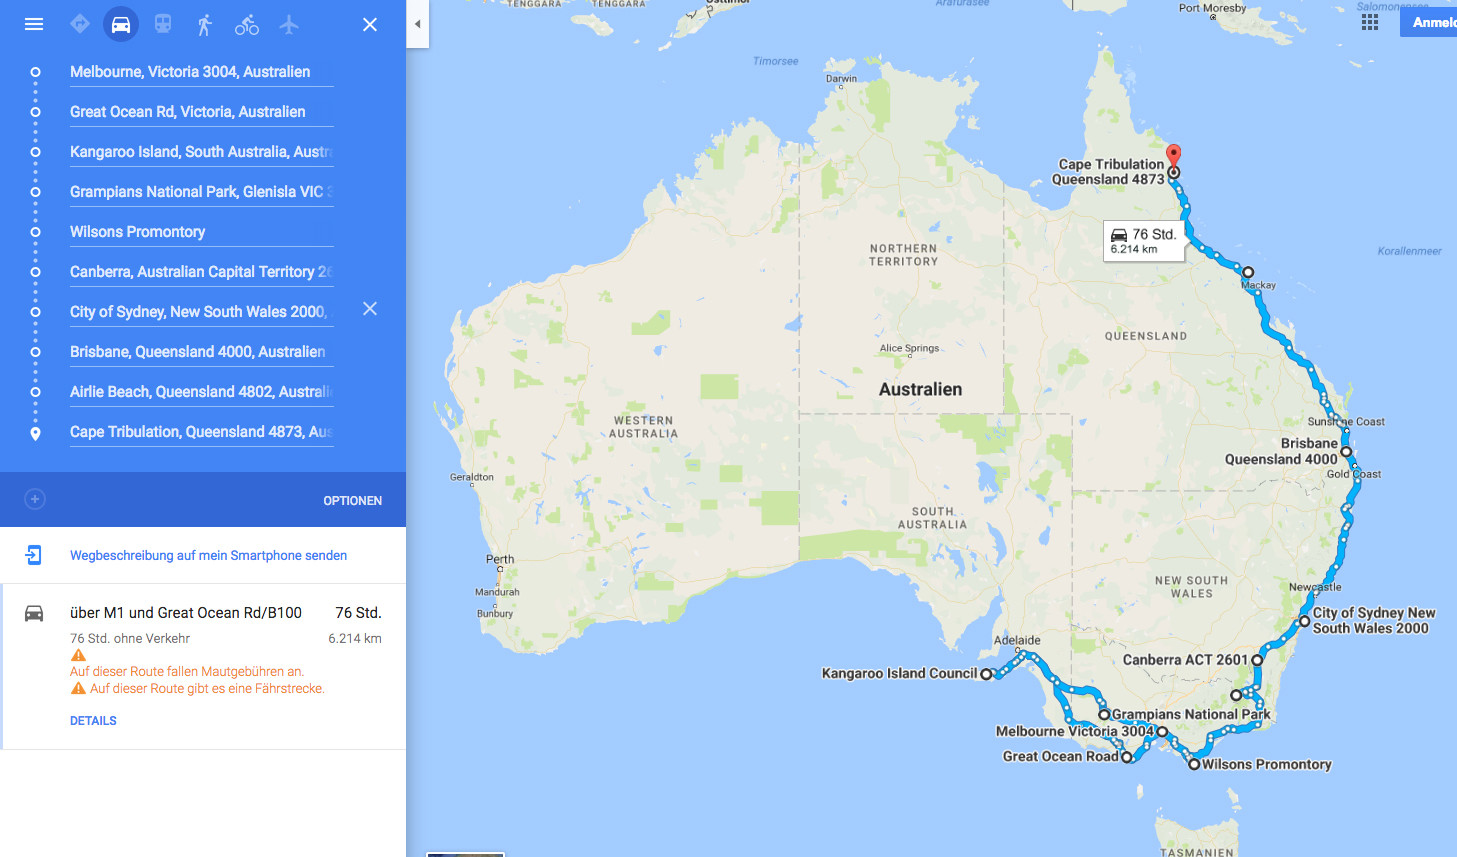 Australien, Miles and Shores, Route, Roadtrip, Reiseroute, Routenplanung, Ostküste, Ostkueste, Melbourne bis Cairns, Sydney, Brisbane, Kangaroo Island, Queensland, Victoria, New South Wales, South Australia